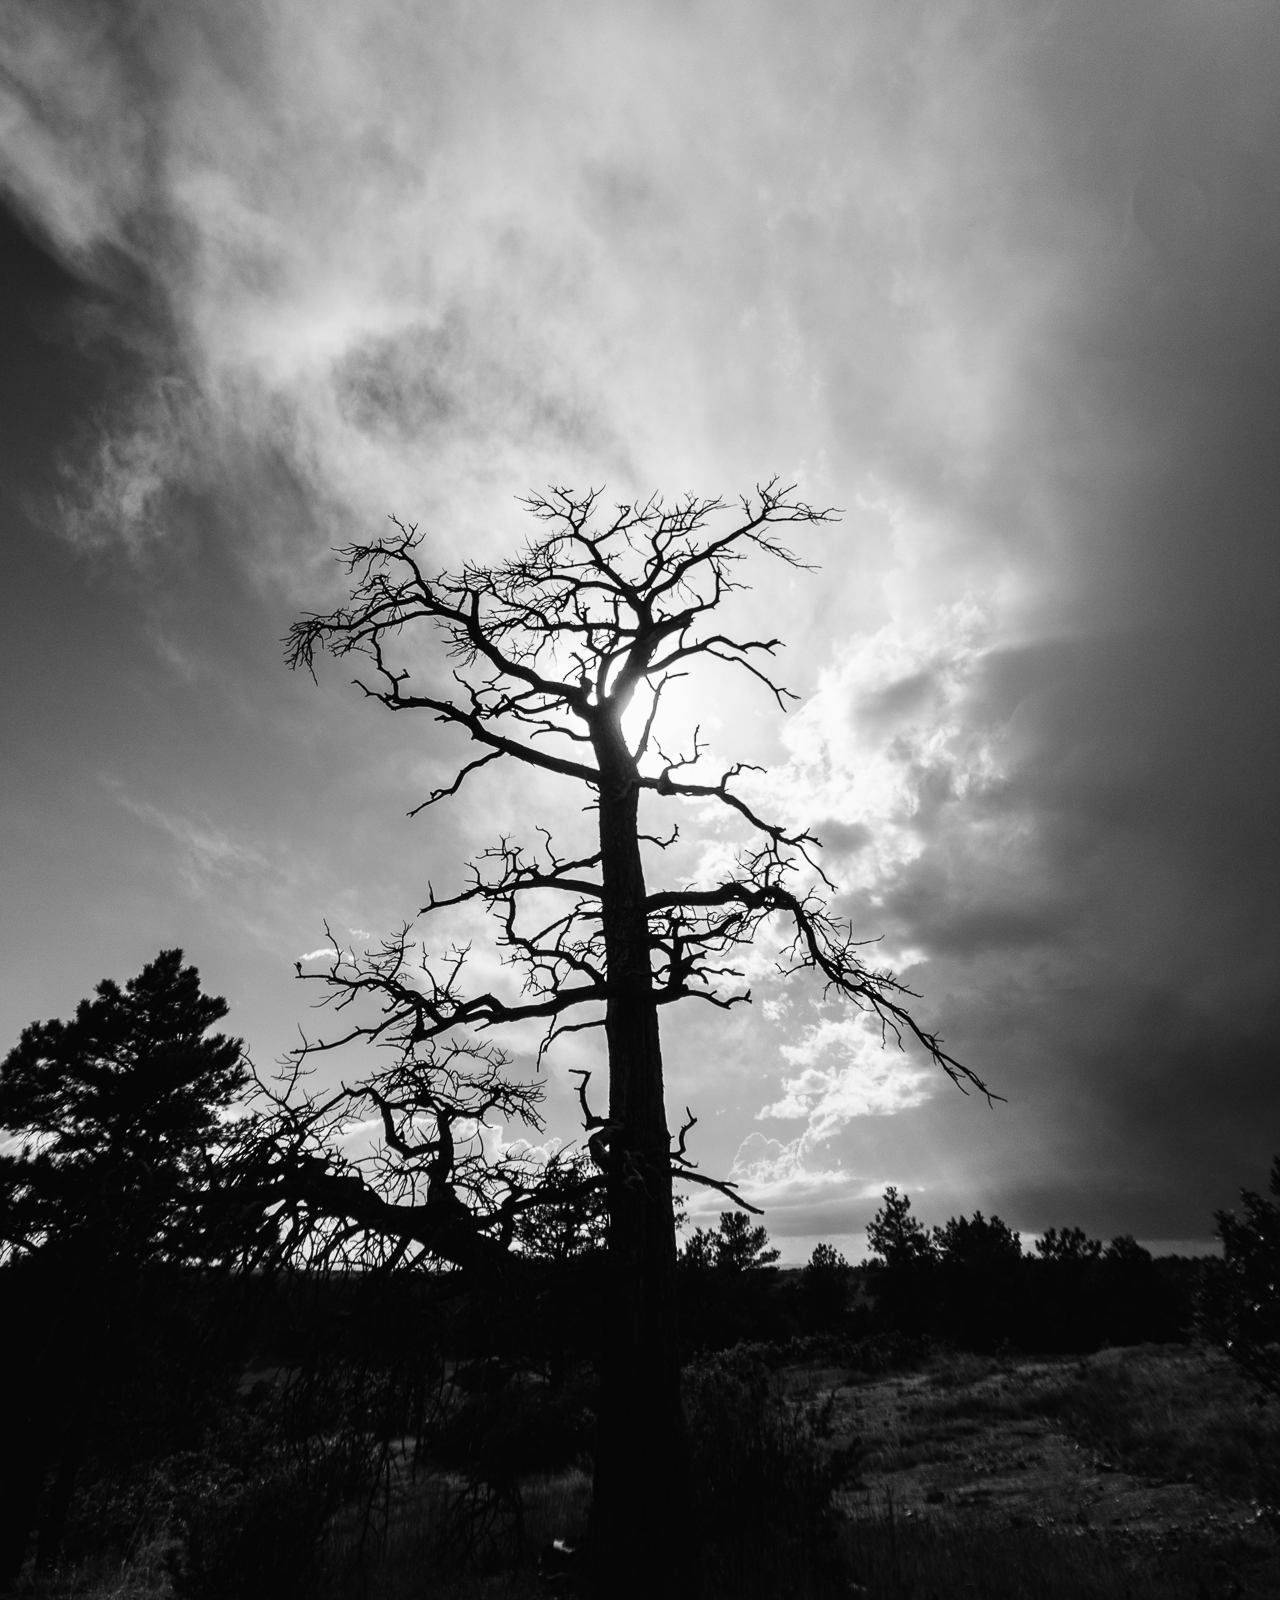 Day 166- 365 Day B&W Photo Challenge - A leafless tree reaches out to the sky, backlit by the afternoon storm clouds.. - Google Pixel 3, Moment Wide Lens, VSCO Fujifilm Neopan 400 Film Simulation